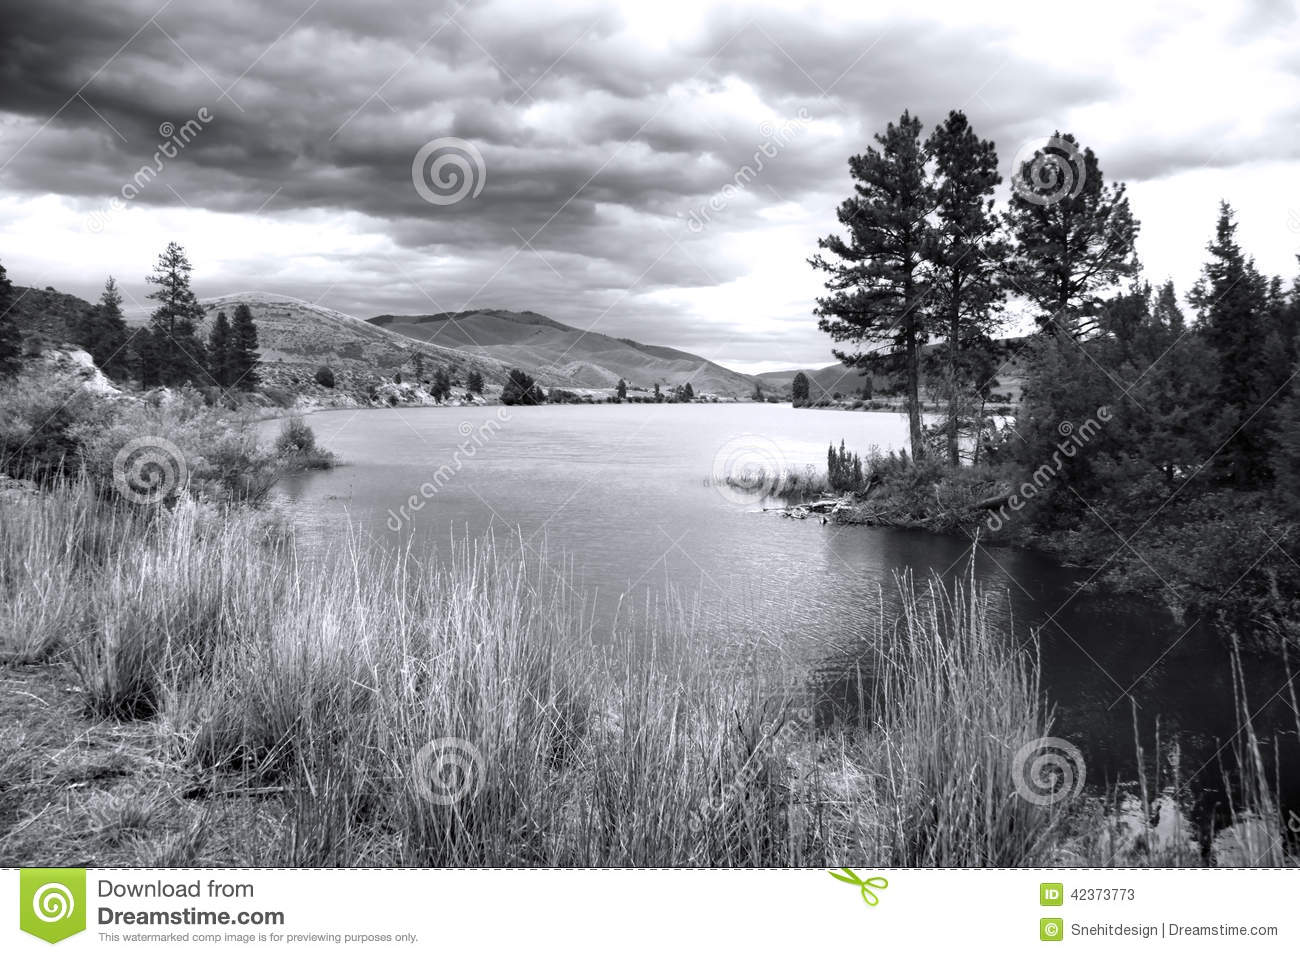 Flathead river montana stock image image of scenery 42373773